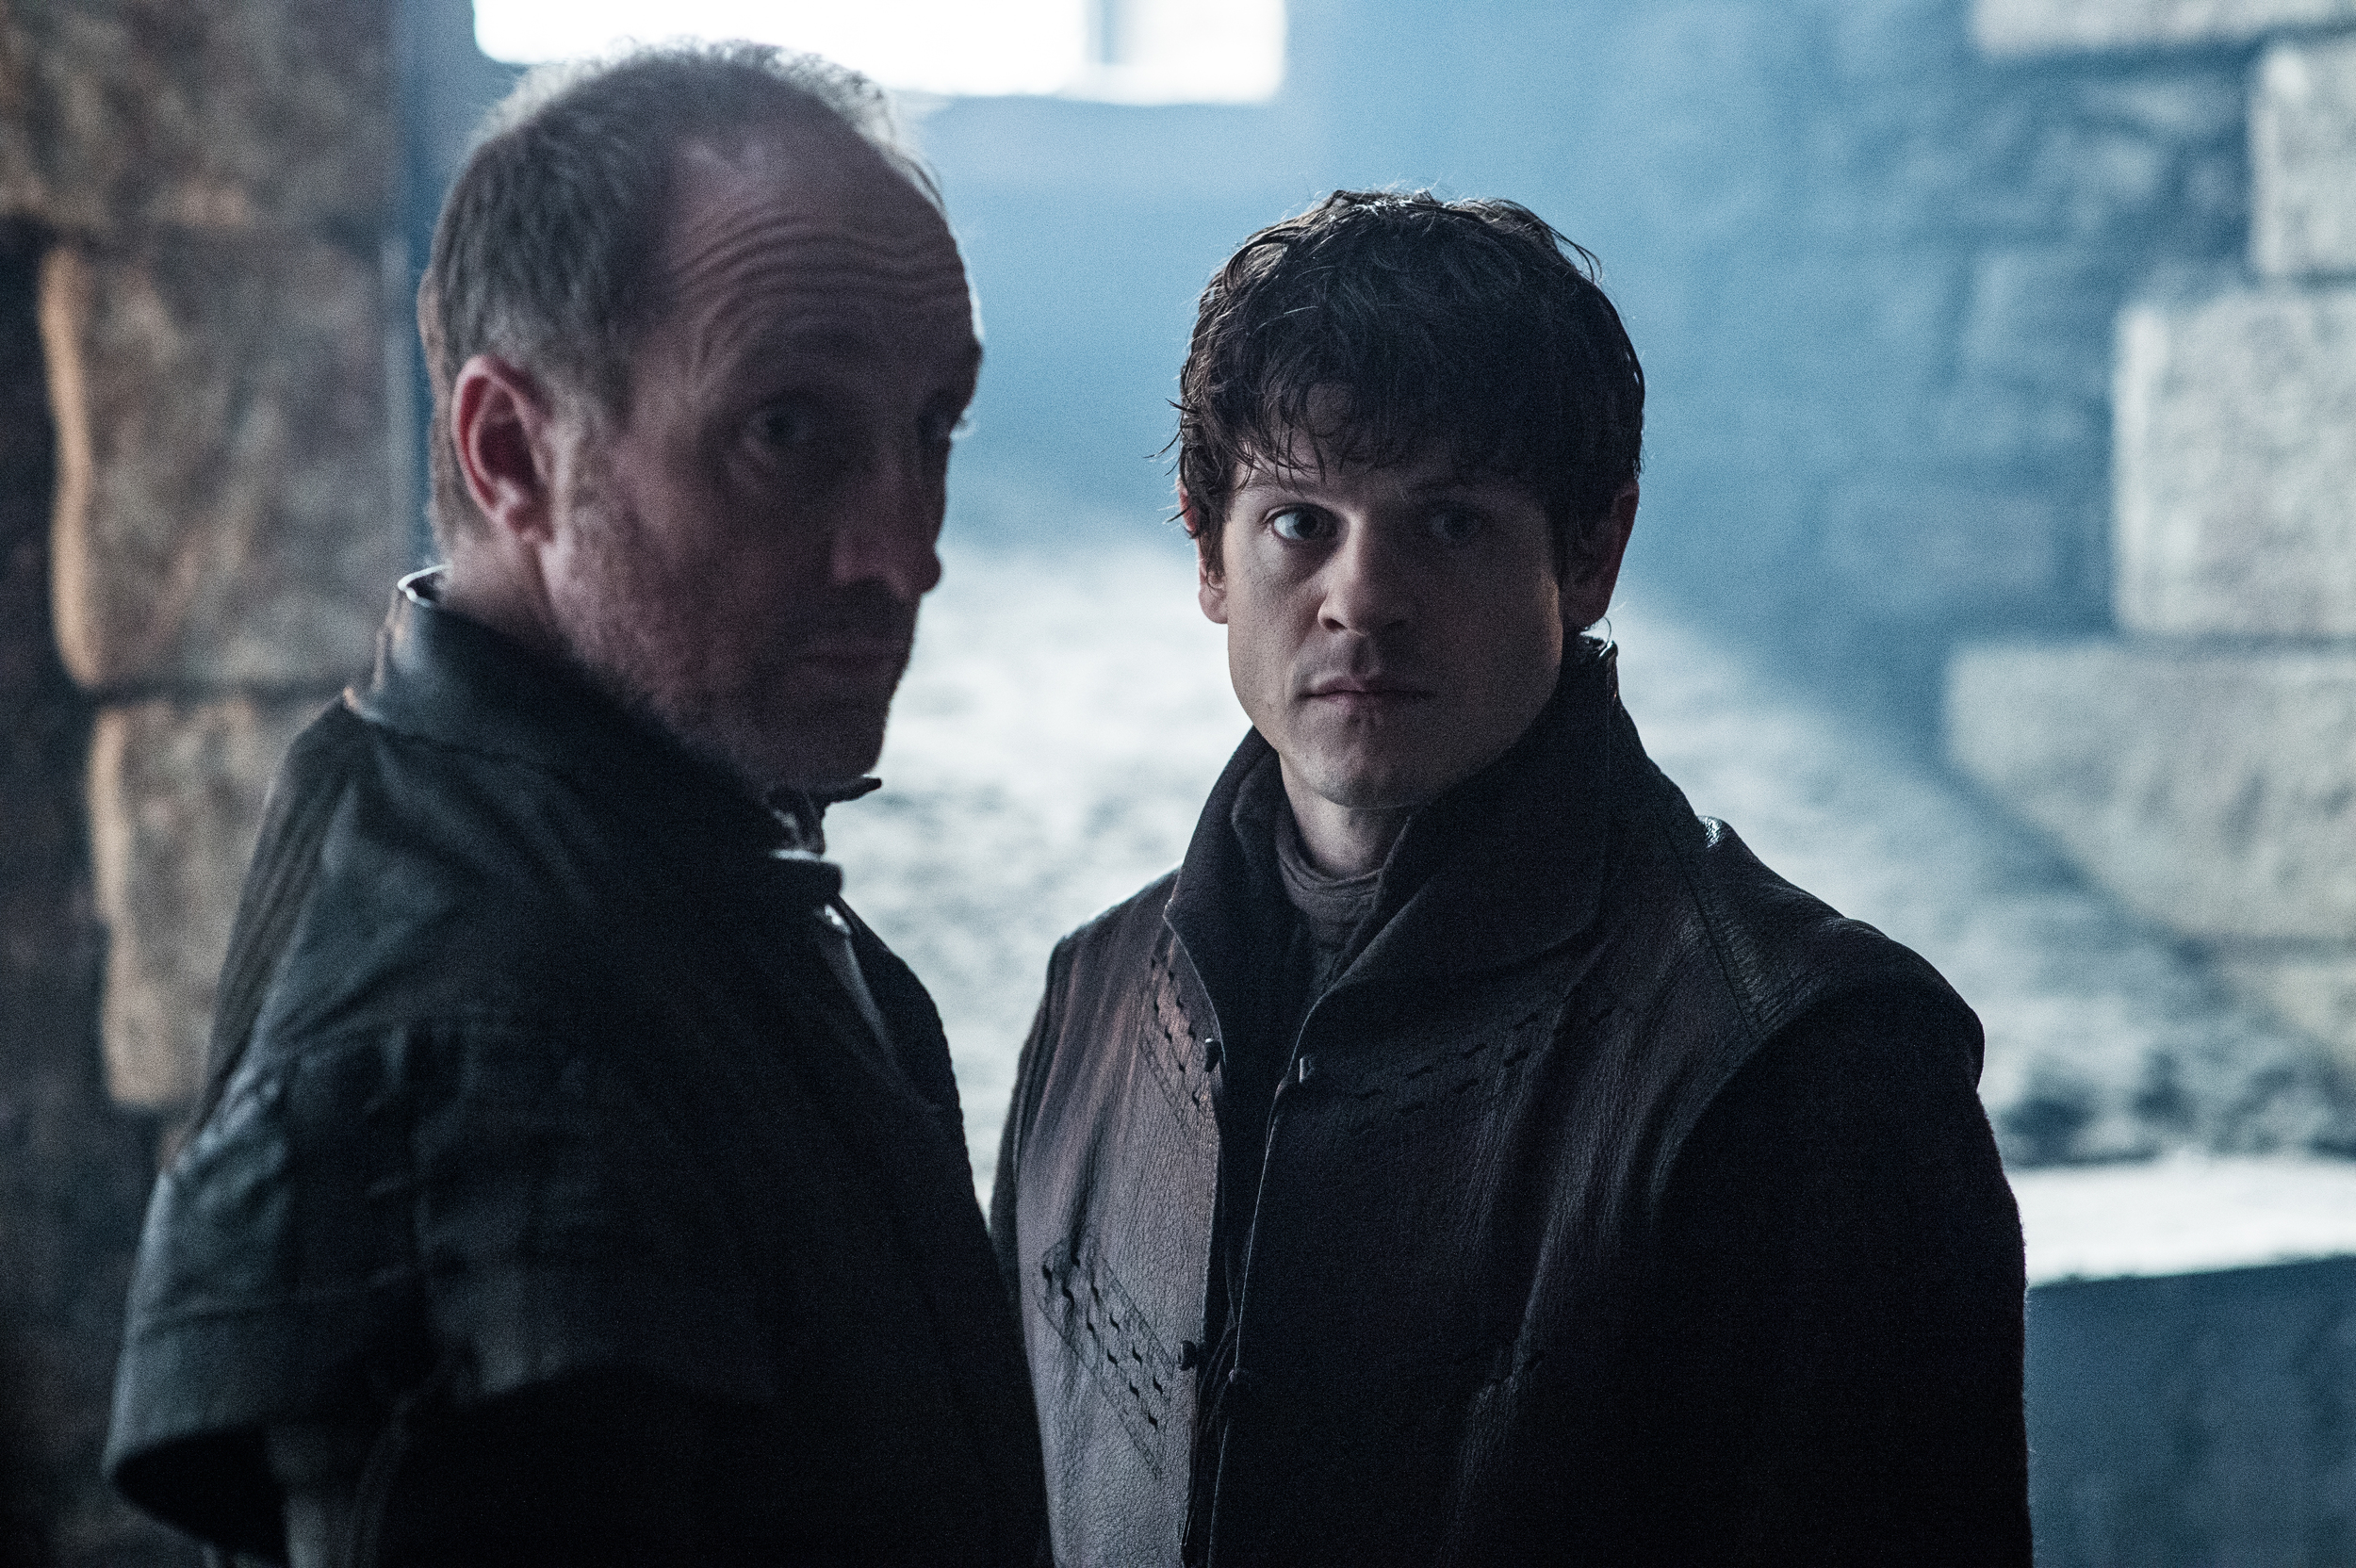 Michael McElhatton as Roose Bolton and Iwan Rheon as Ramsay Bolton